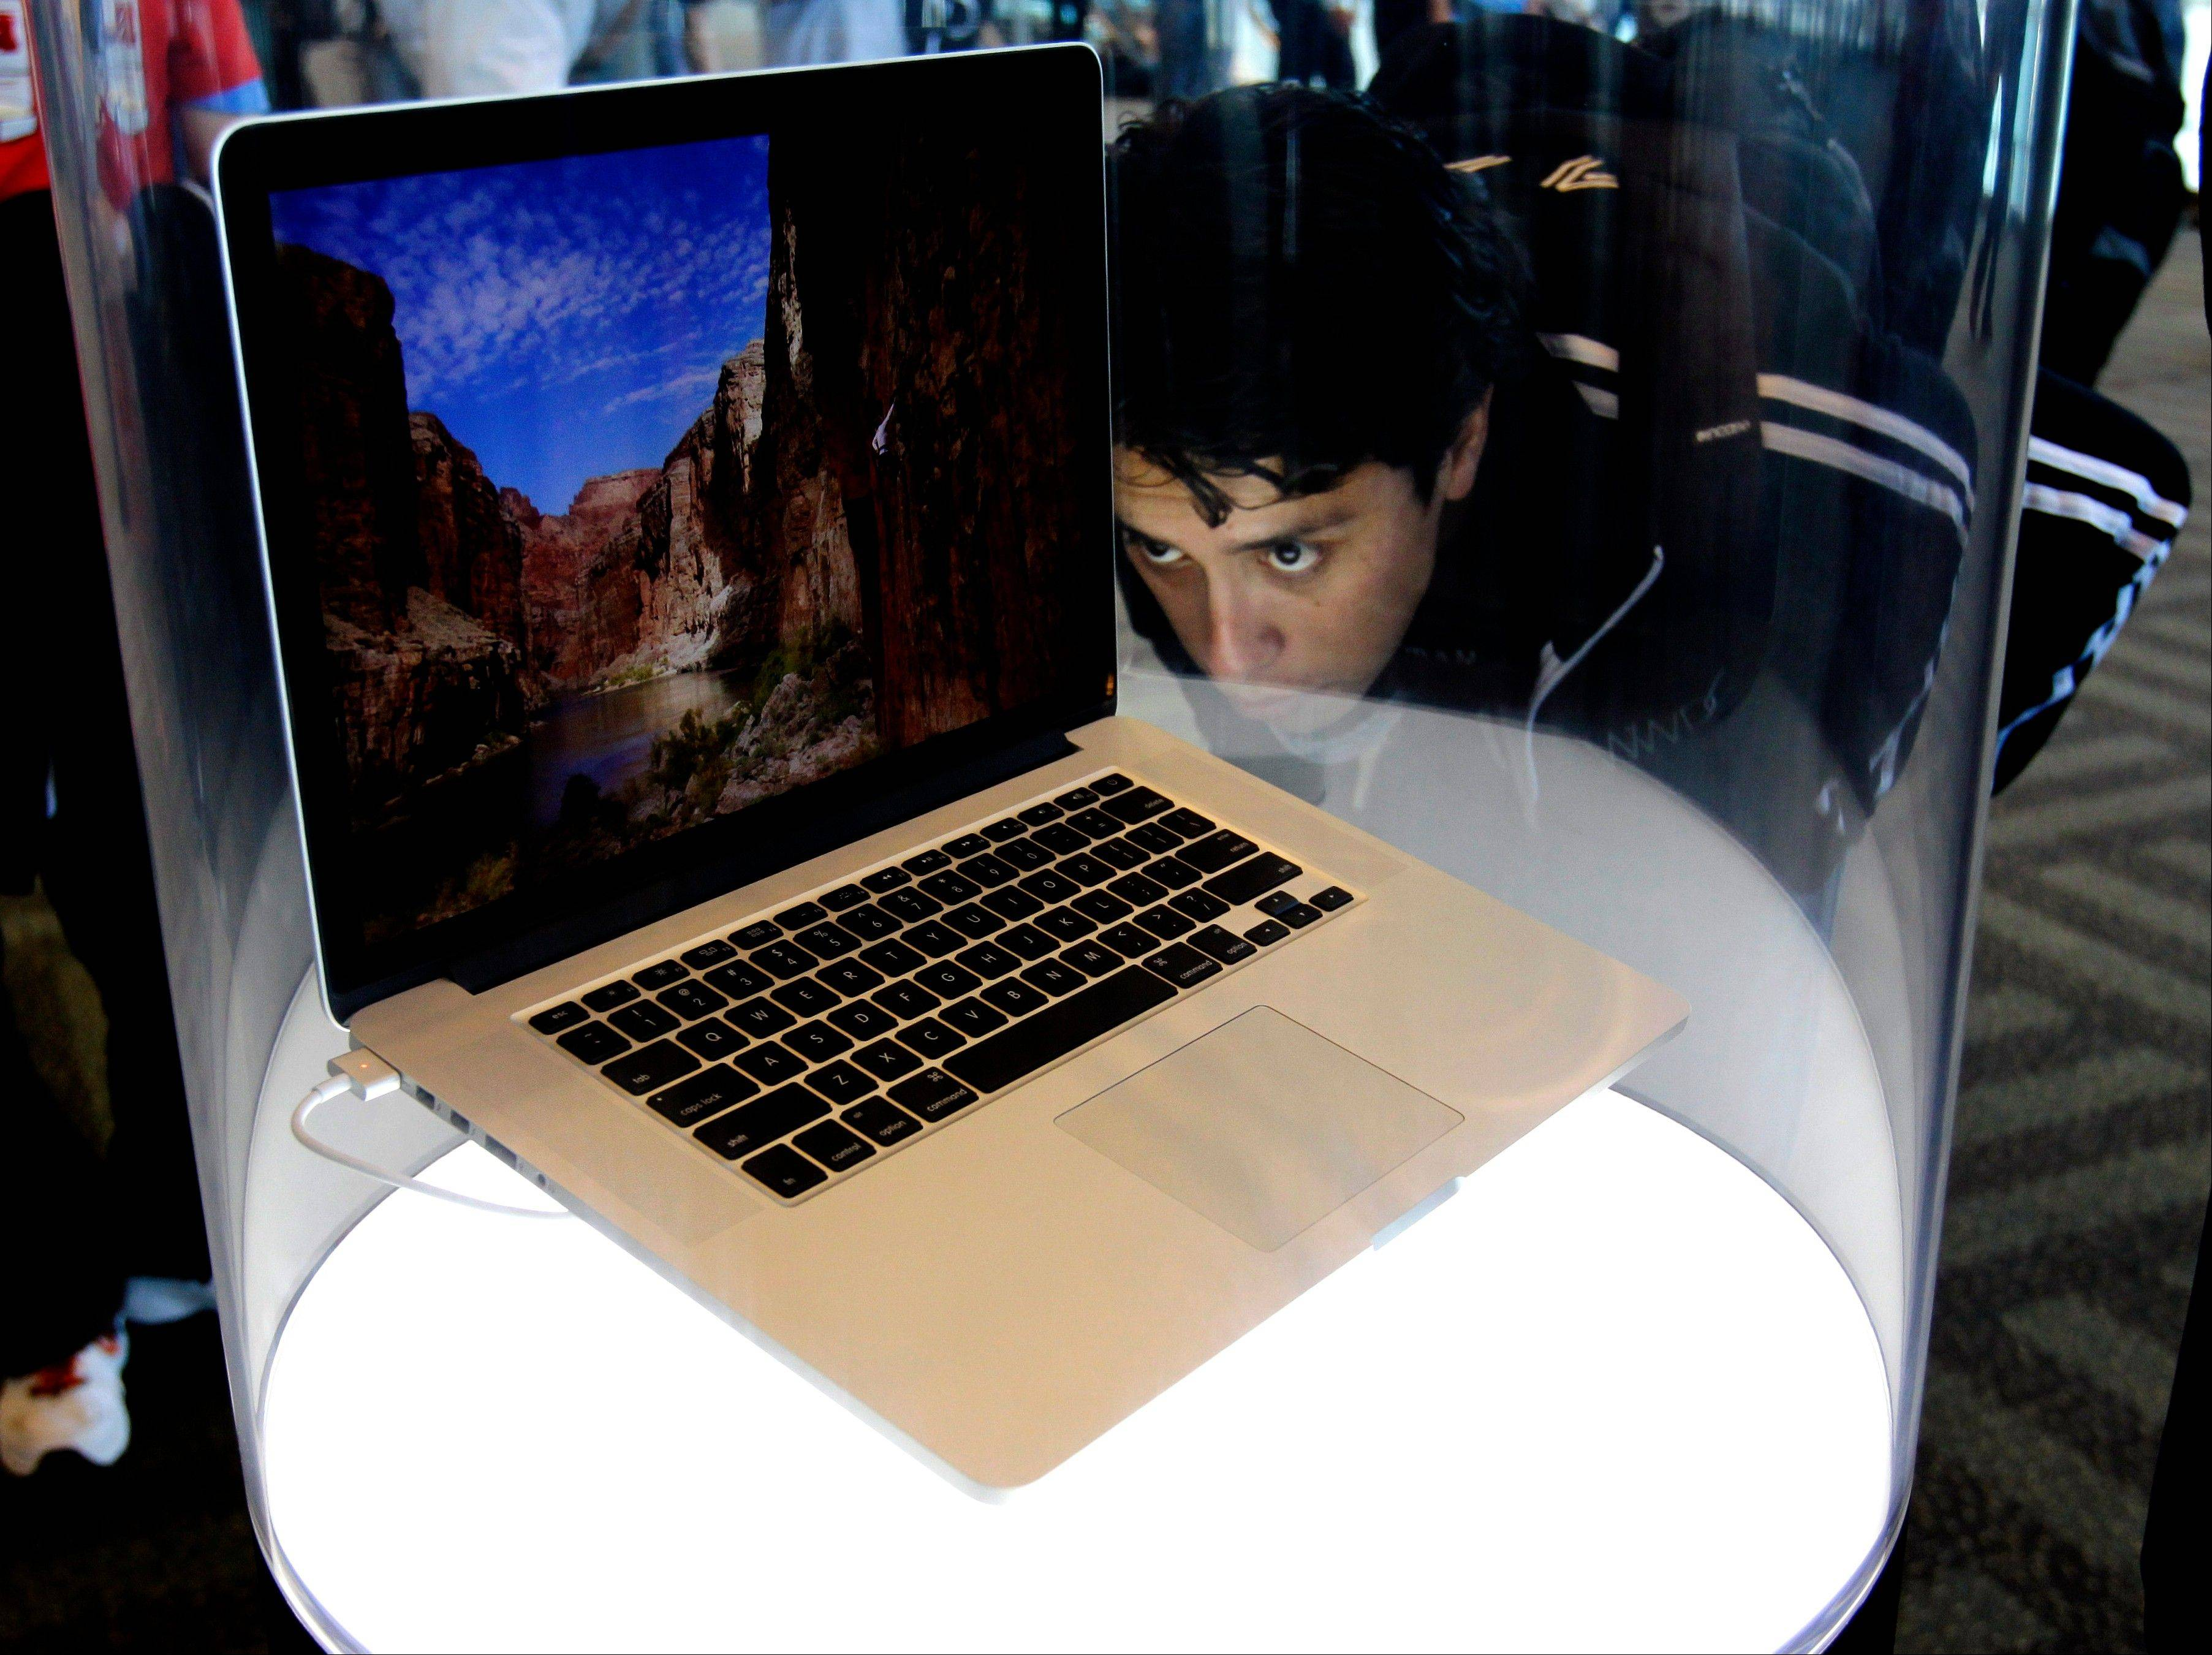 An attendee looks at the new MacBook Pro on display Monday at the Apple Developers Conference in San Francisco. New iPhone and Mac software and updated Mac computers were among the highlights Monday at Apple Inc.'s annual conference for software developers.